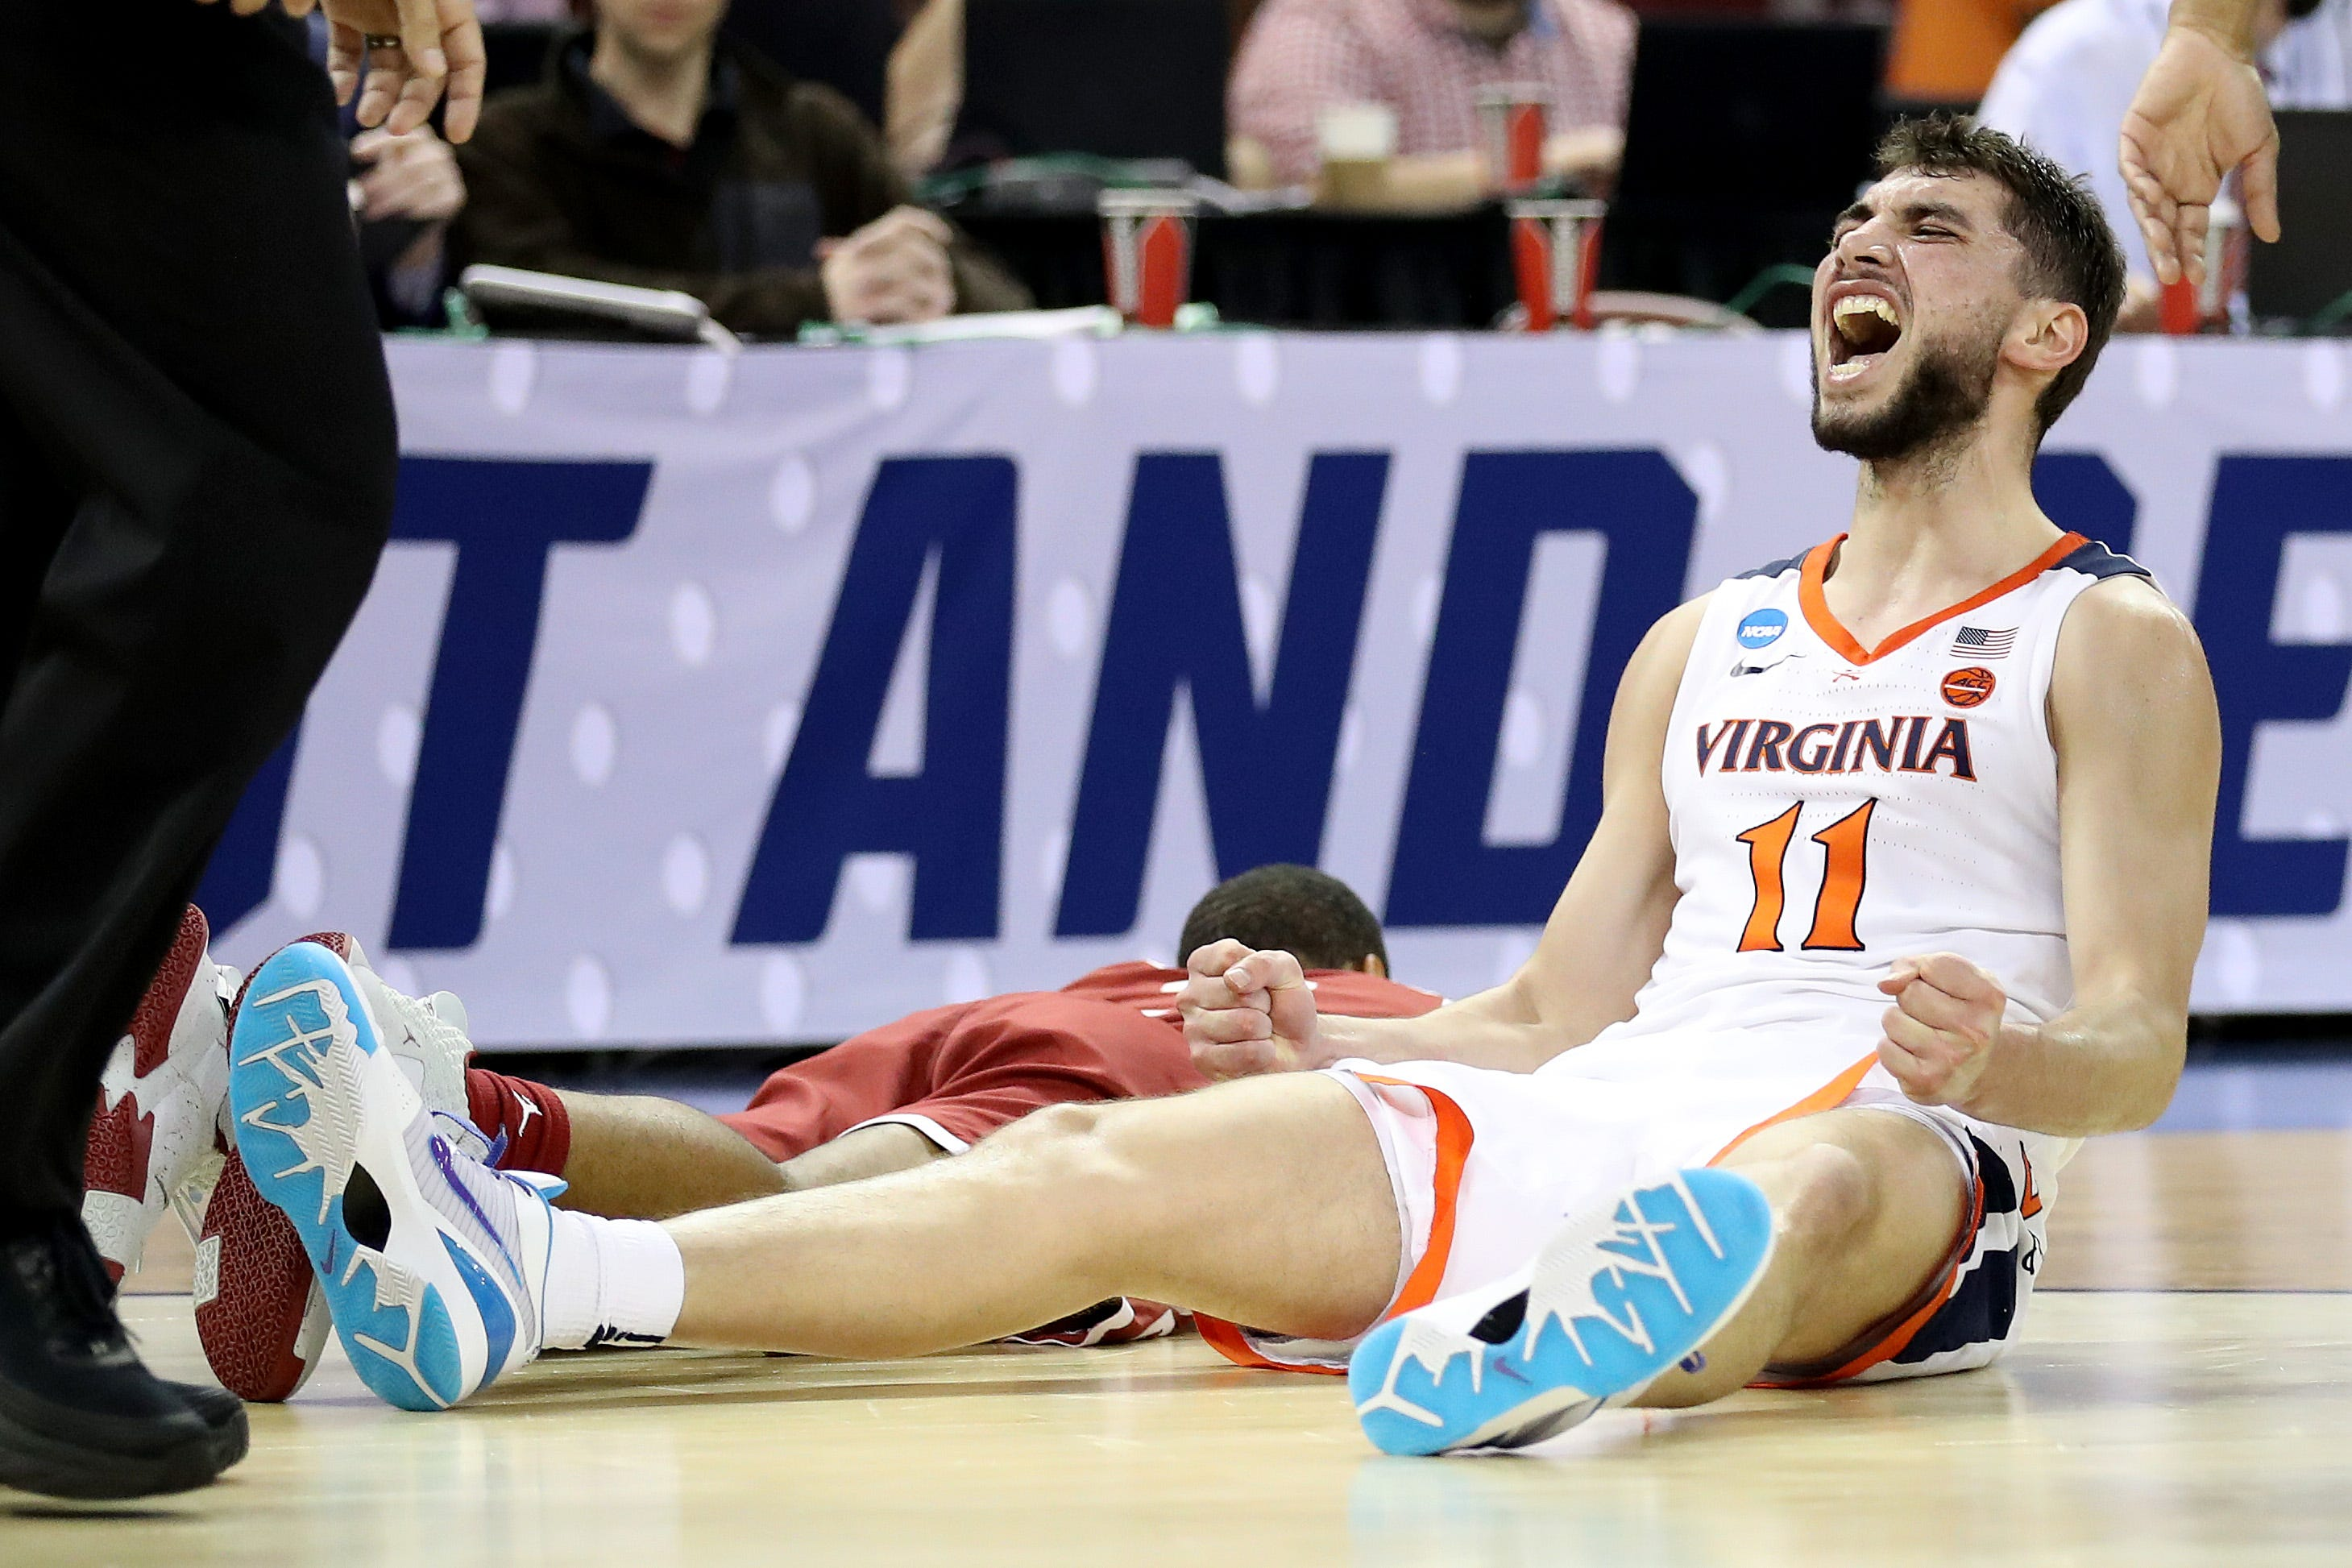 march-madness-winners-and-losers-from-the-ncaa-tournament-aposs-first-weekend-before-sweet-16